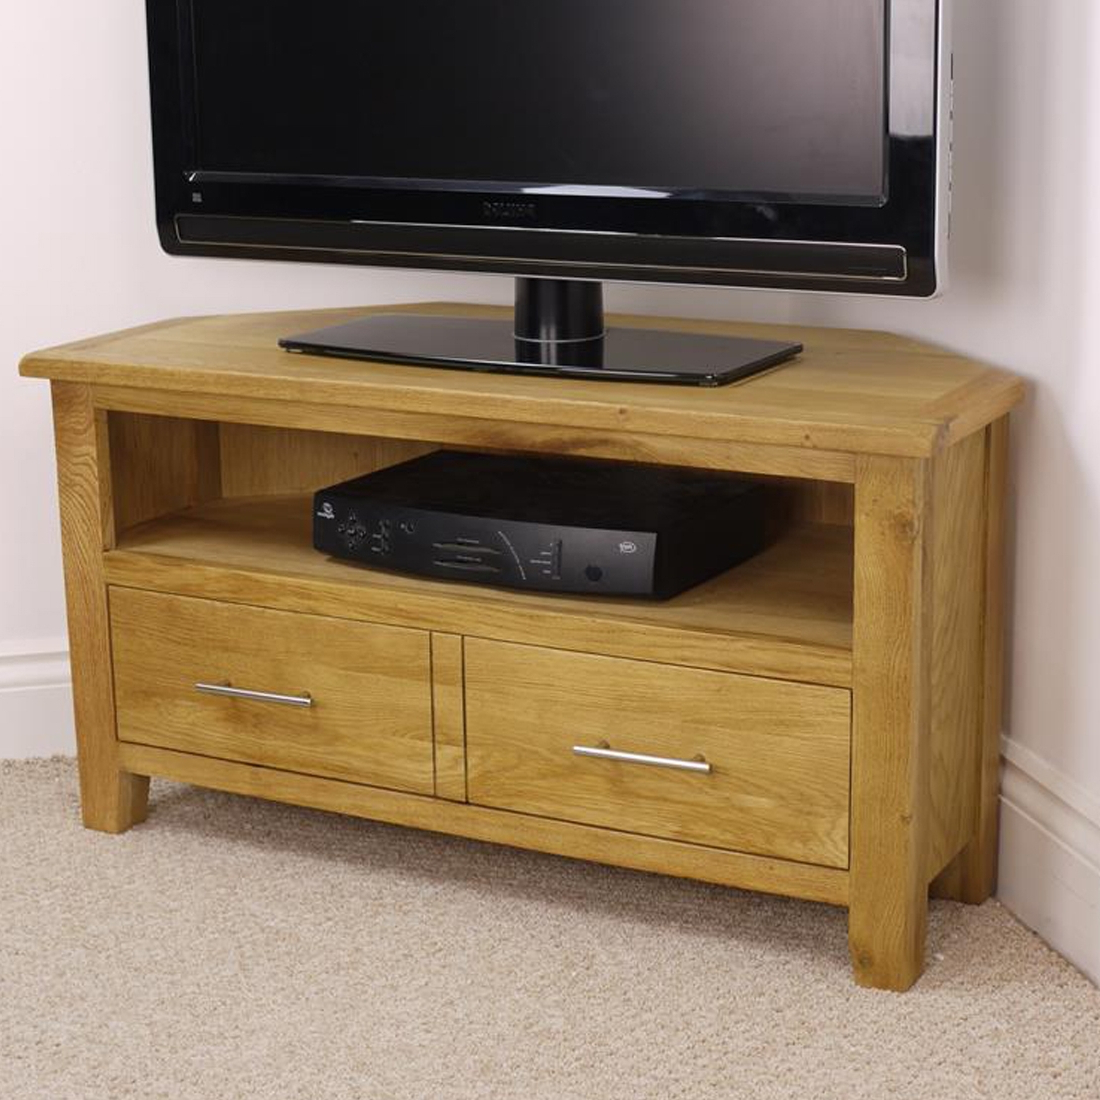 Favorite Corner Tv Stand And Its Benefits – Furnish Ideas Throughout Contemporary Oak Tv Stands (Gallery 17 of 20)